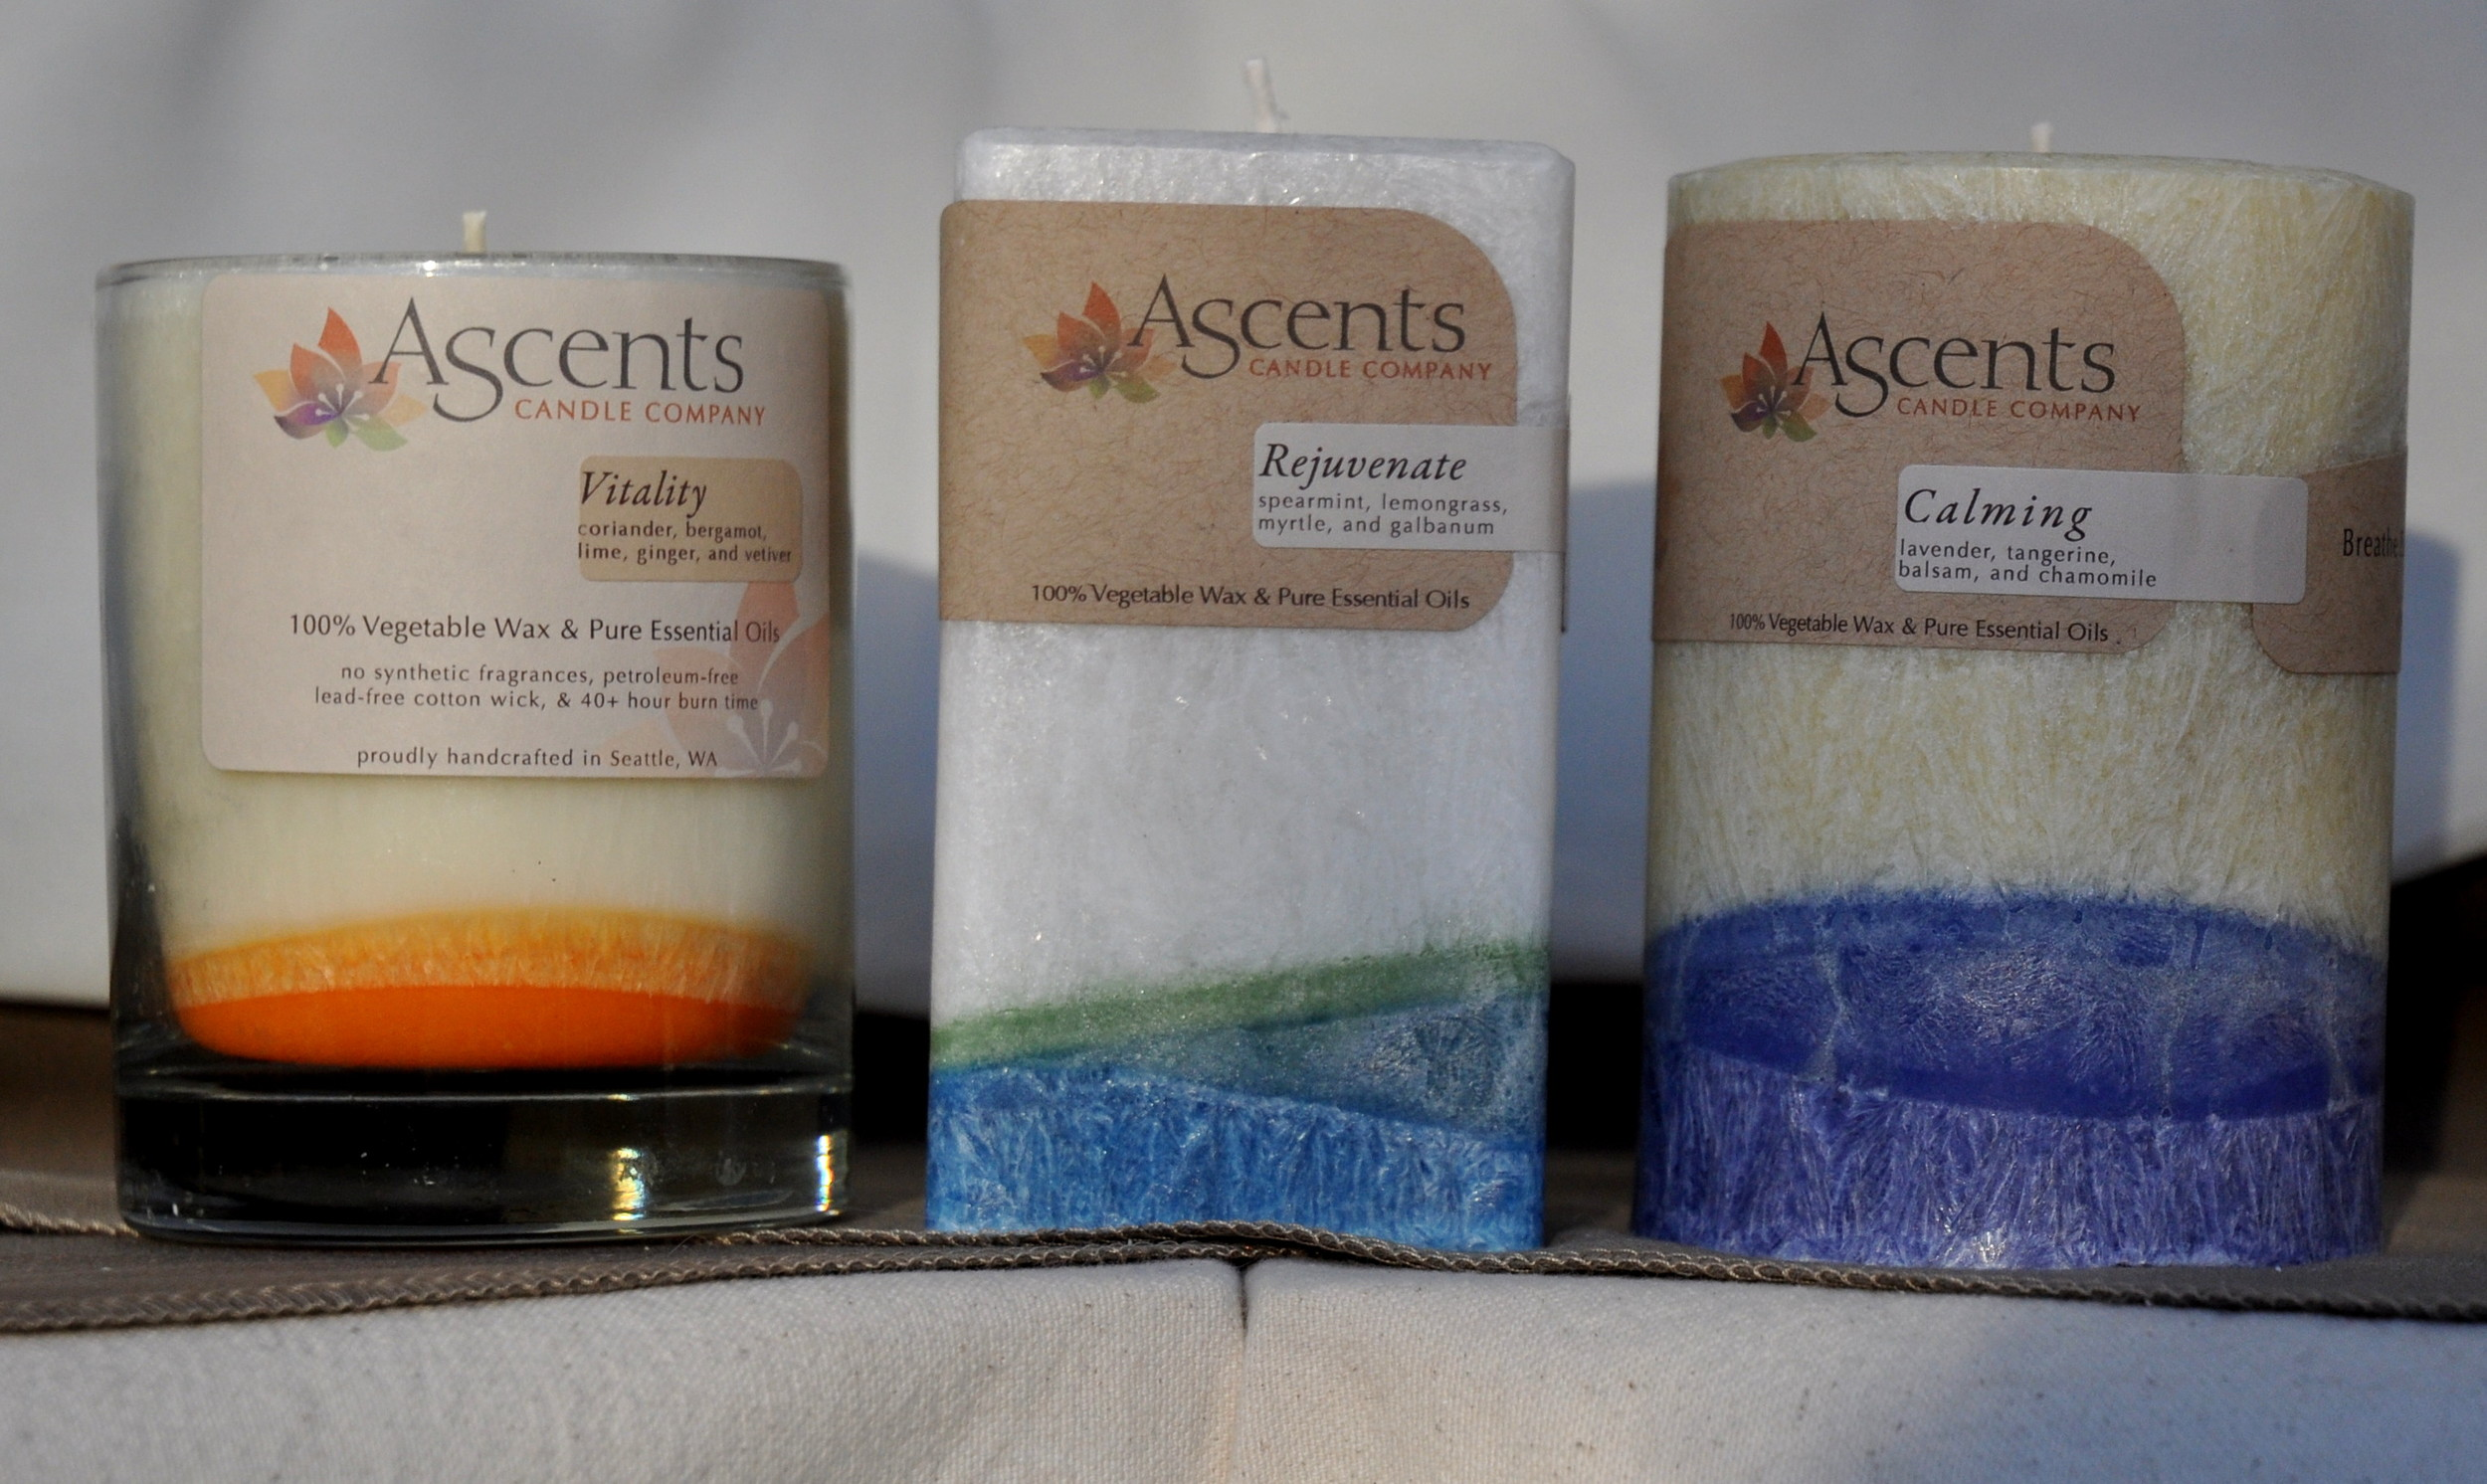 Beautiful, non-toxic candles from Ascents Candles. Photo copyright 2012 by Zachary D. Lyons.